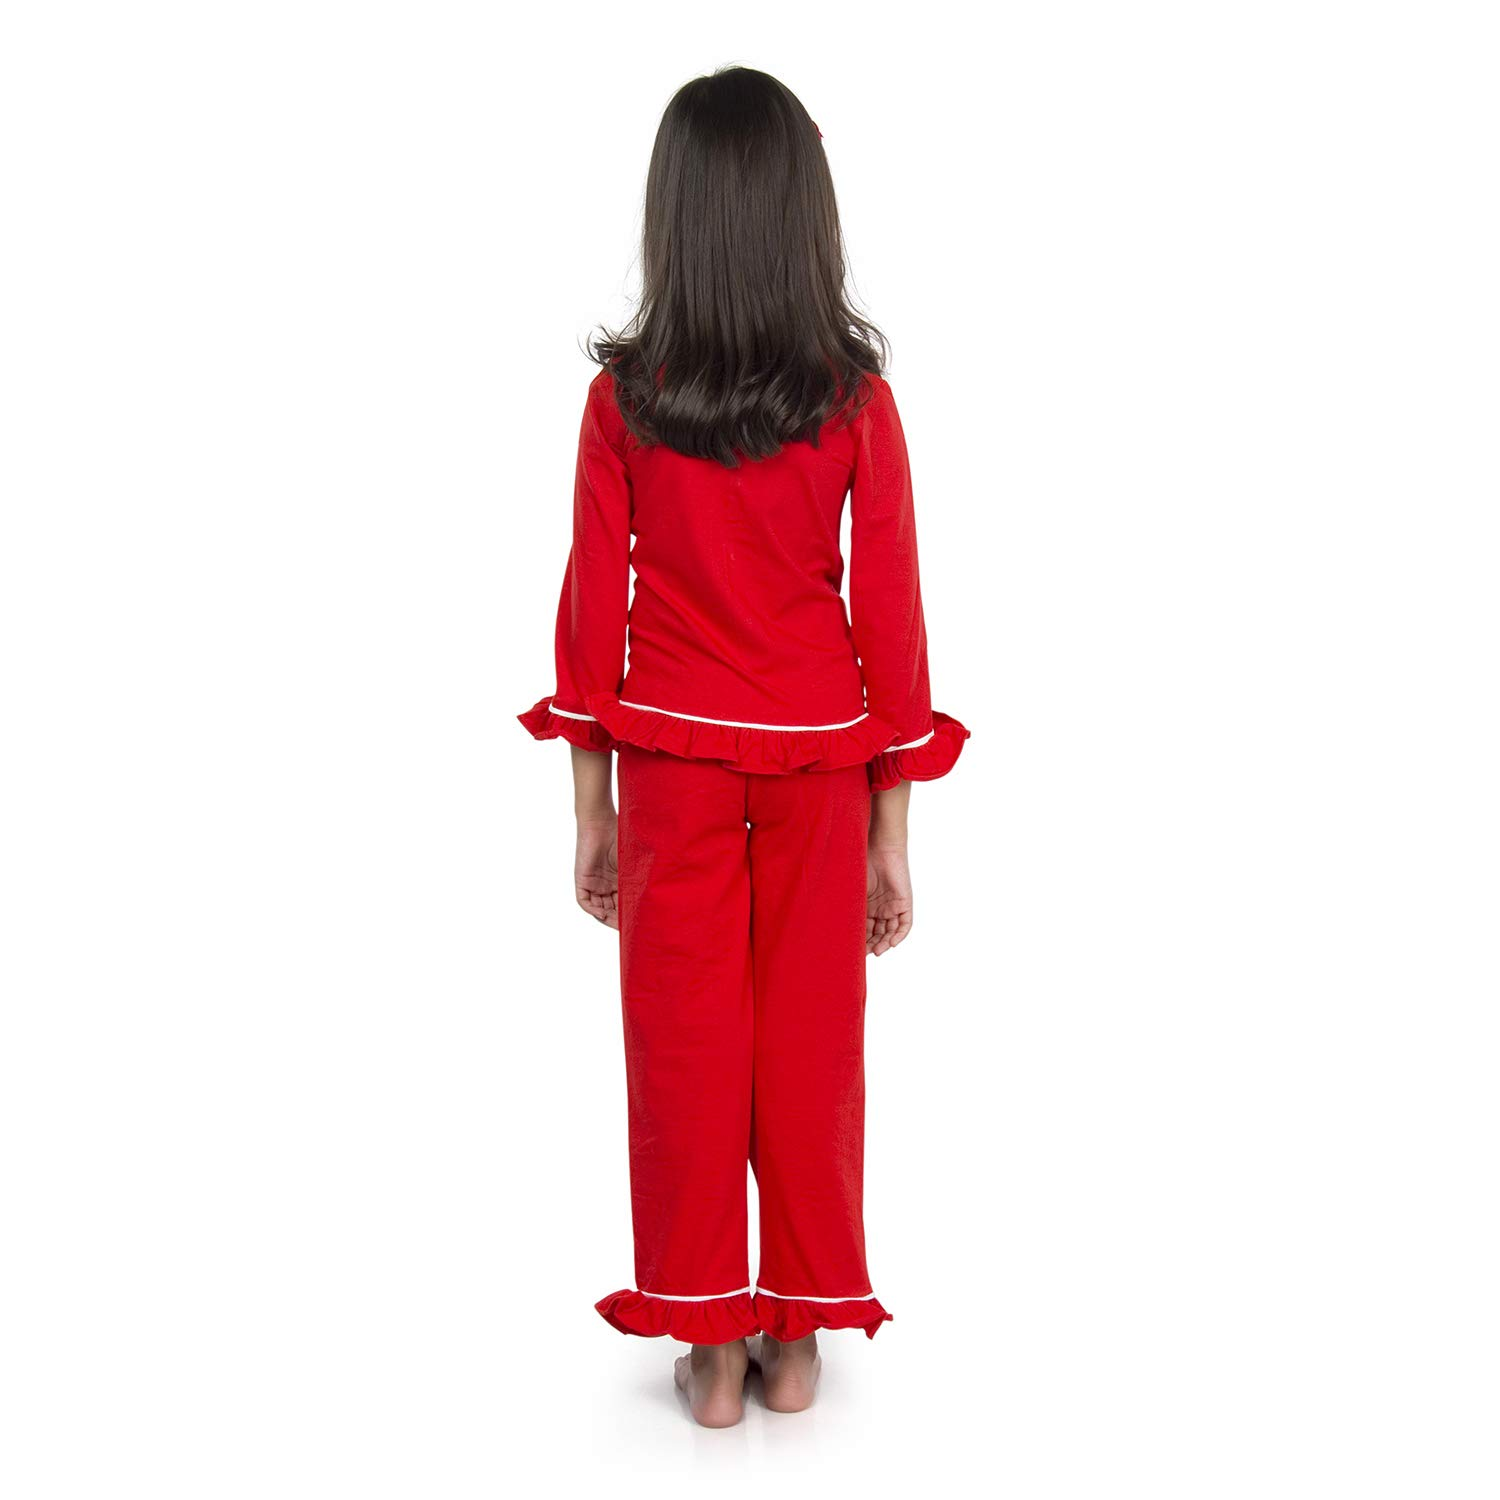 608f096a23 olele® Girls Tomato Red Cotton Night Suit with Pajama Set